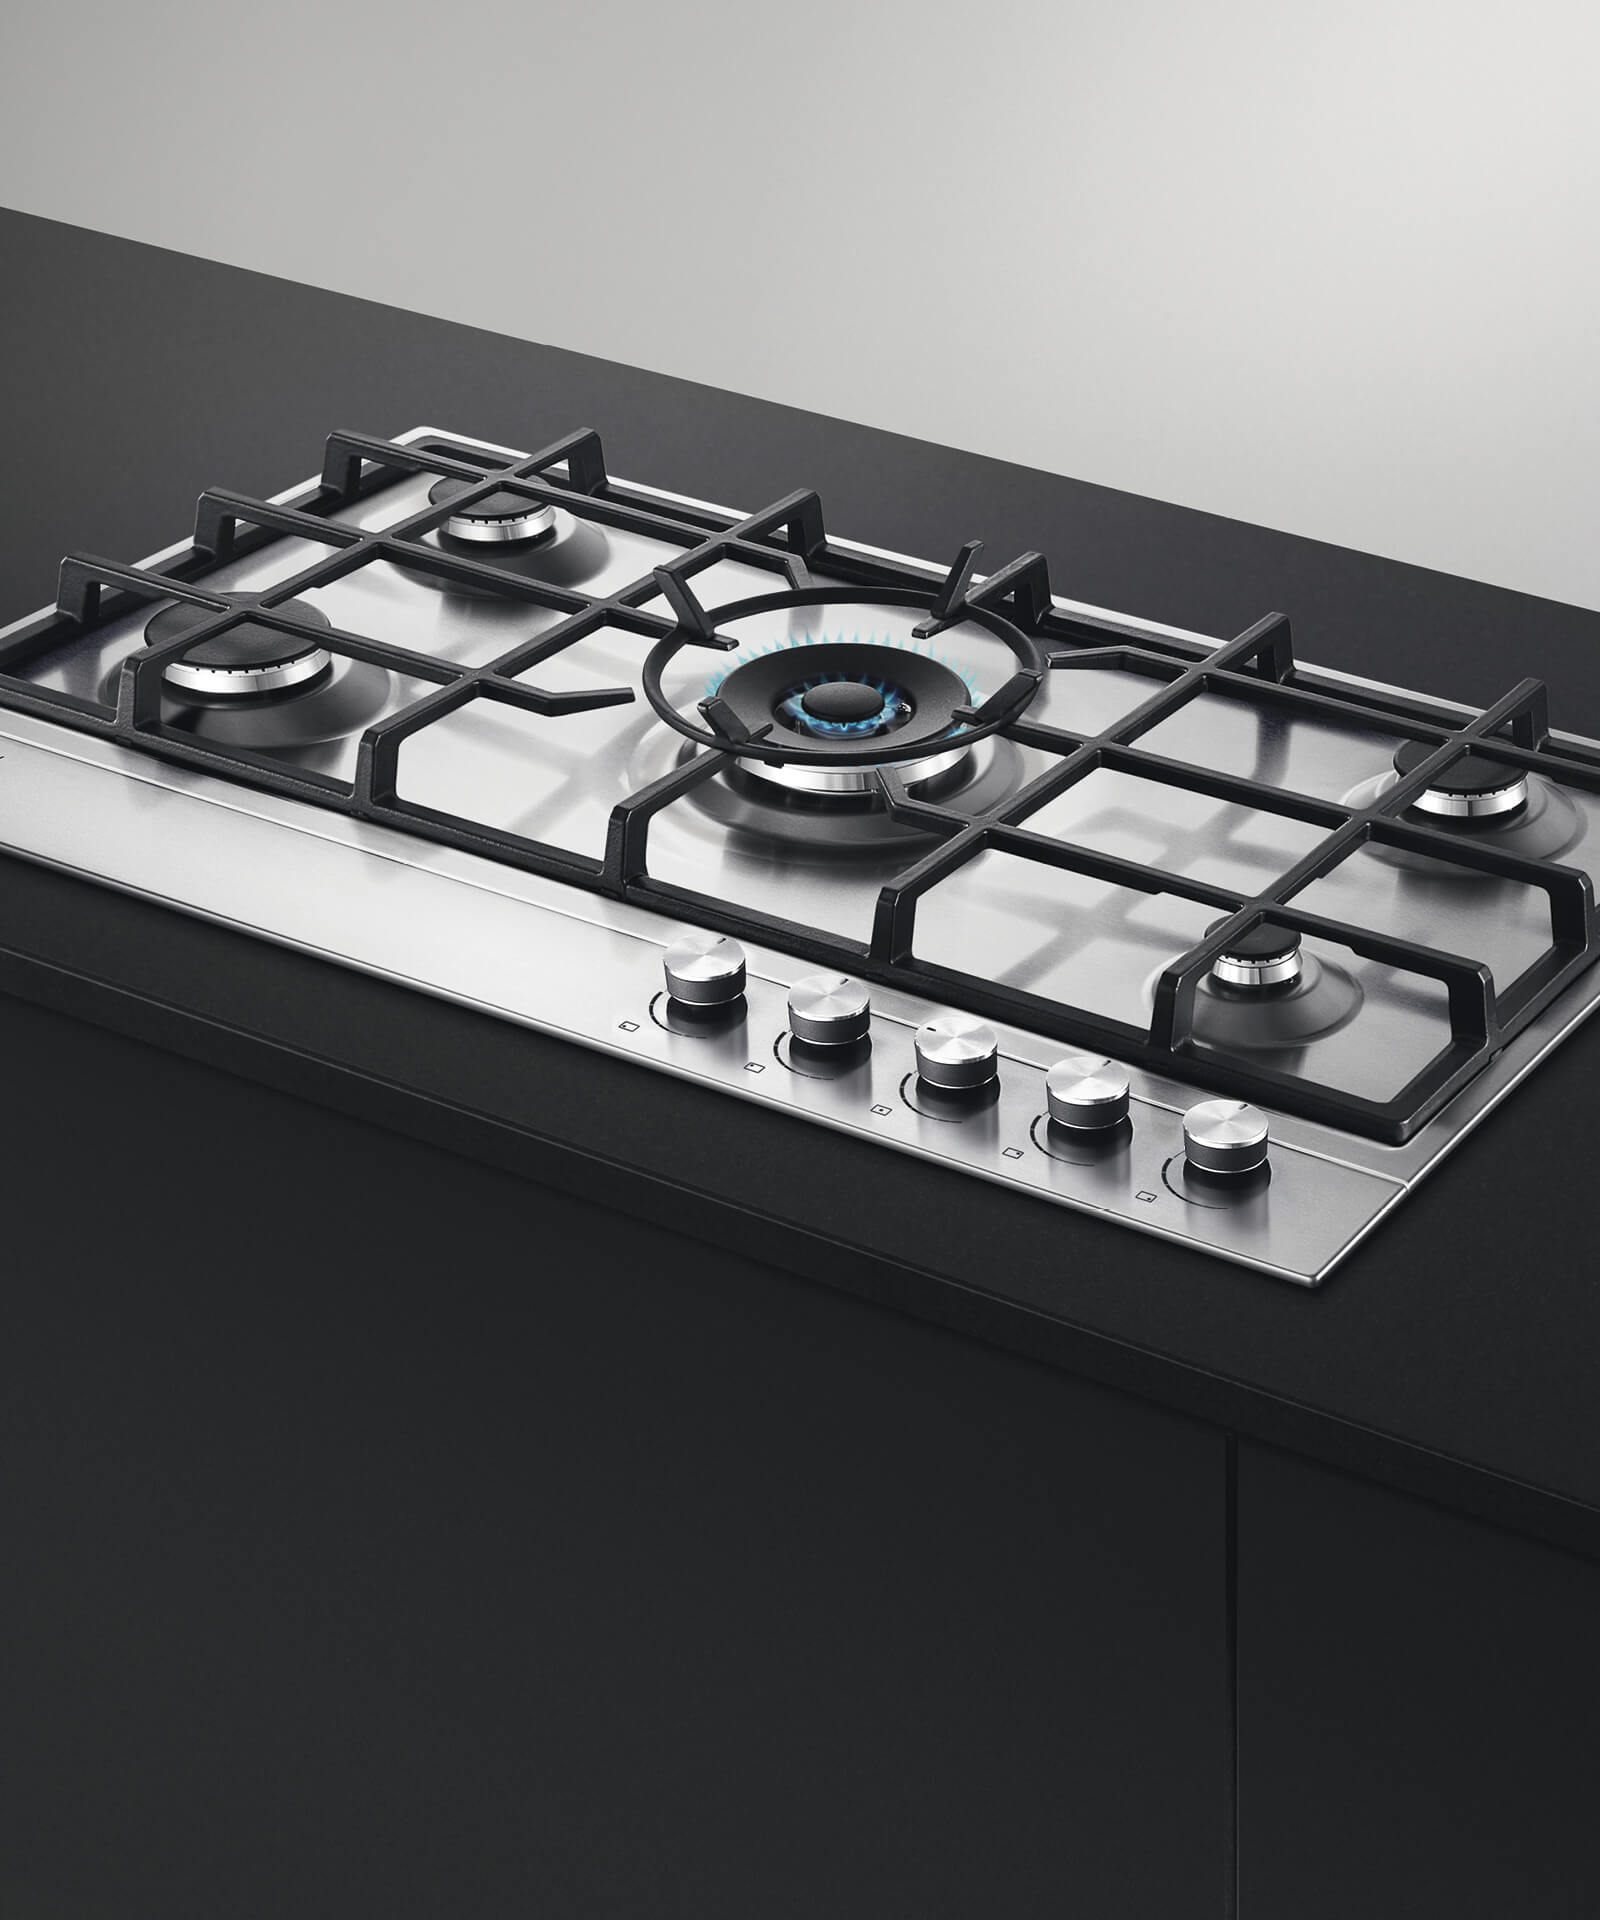 Cg905dx1 Fisher Paykel 90cm Gas On Steel Cooktop